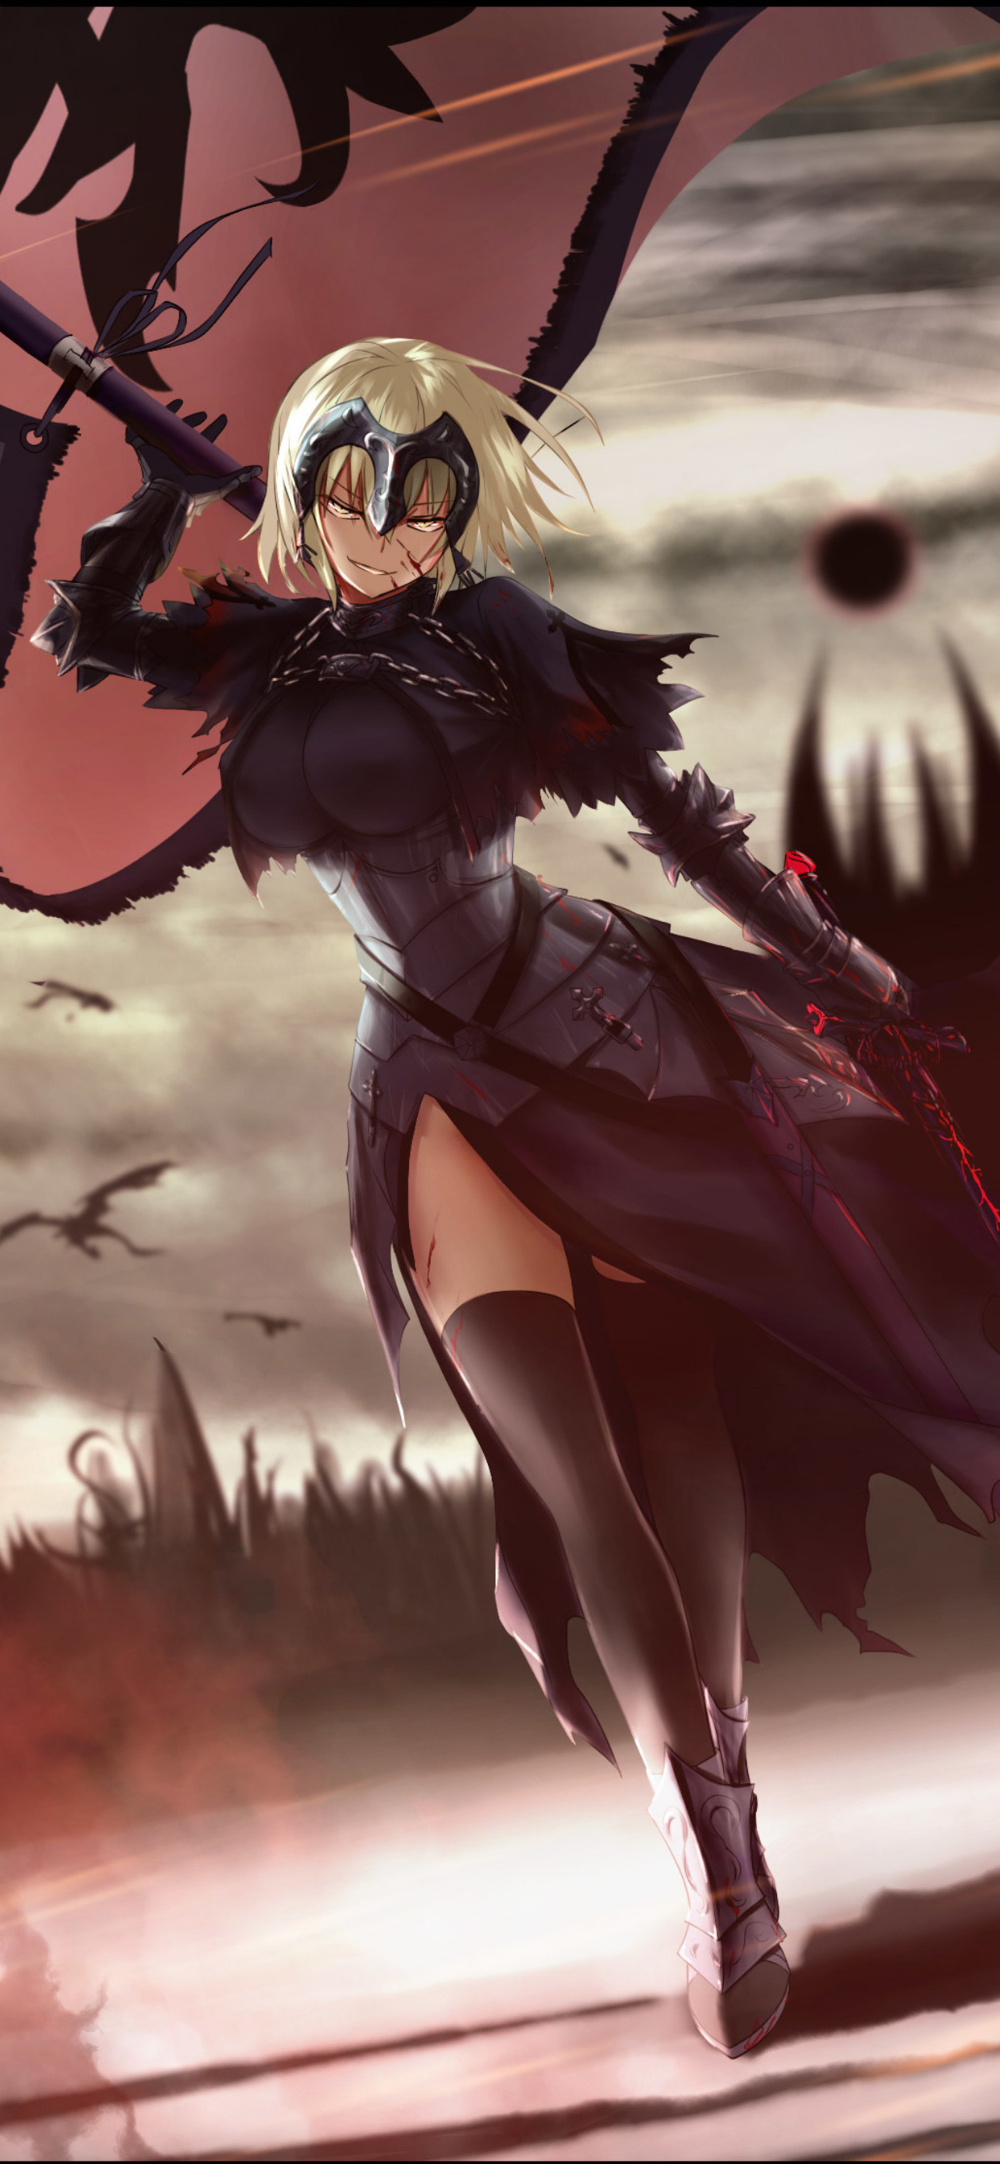 Anime Fate Grand Order 4k Iphone Xs Max Hd 4k Wallpapers Fate Jeanne D Arc Alter Is Free On Elsetge Cat P In 2020 Fate Stay Night Anime Anime Wallpaper Iphone Anime